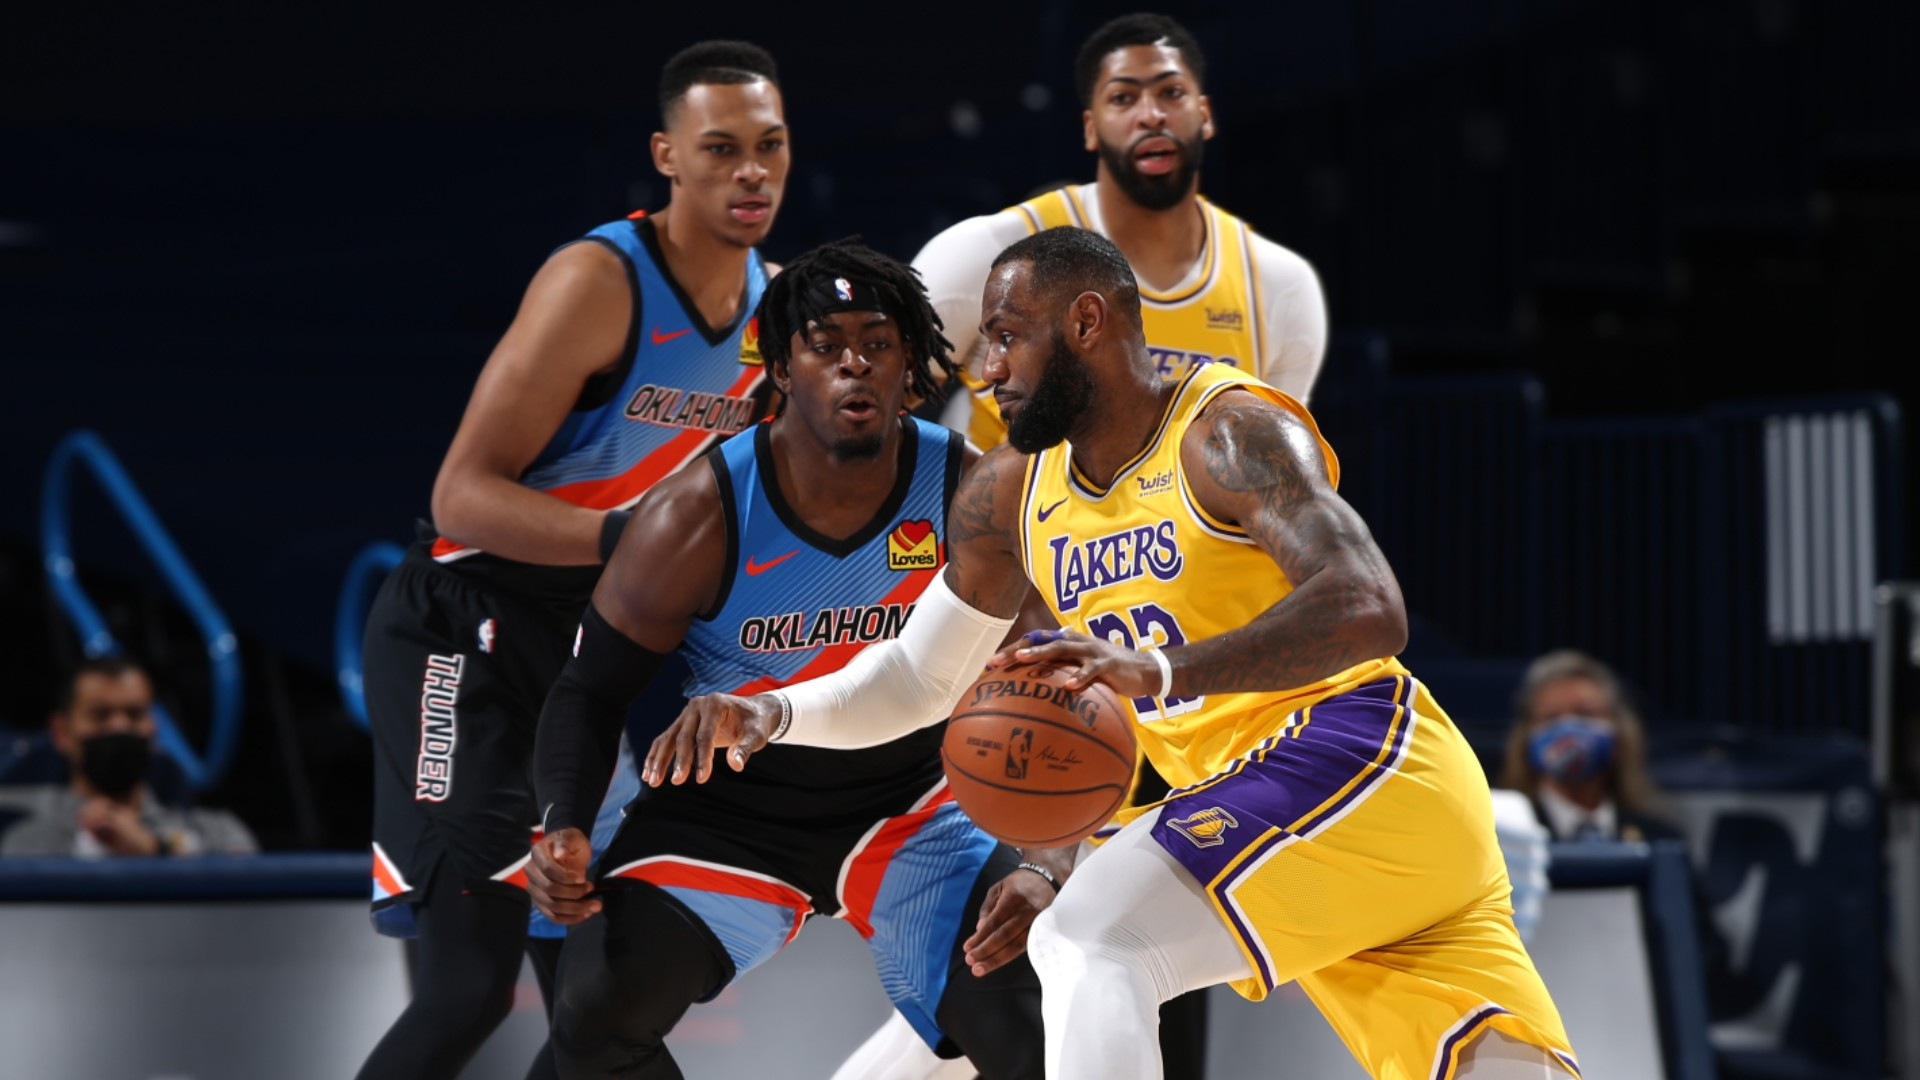 Lakers set franchise record and Doncic makes history as Lillard and McCollum ignite Blazers